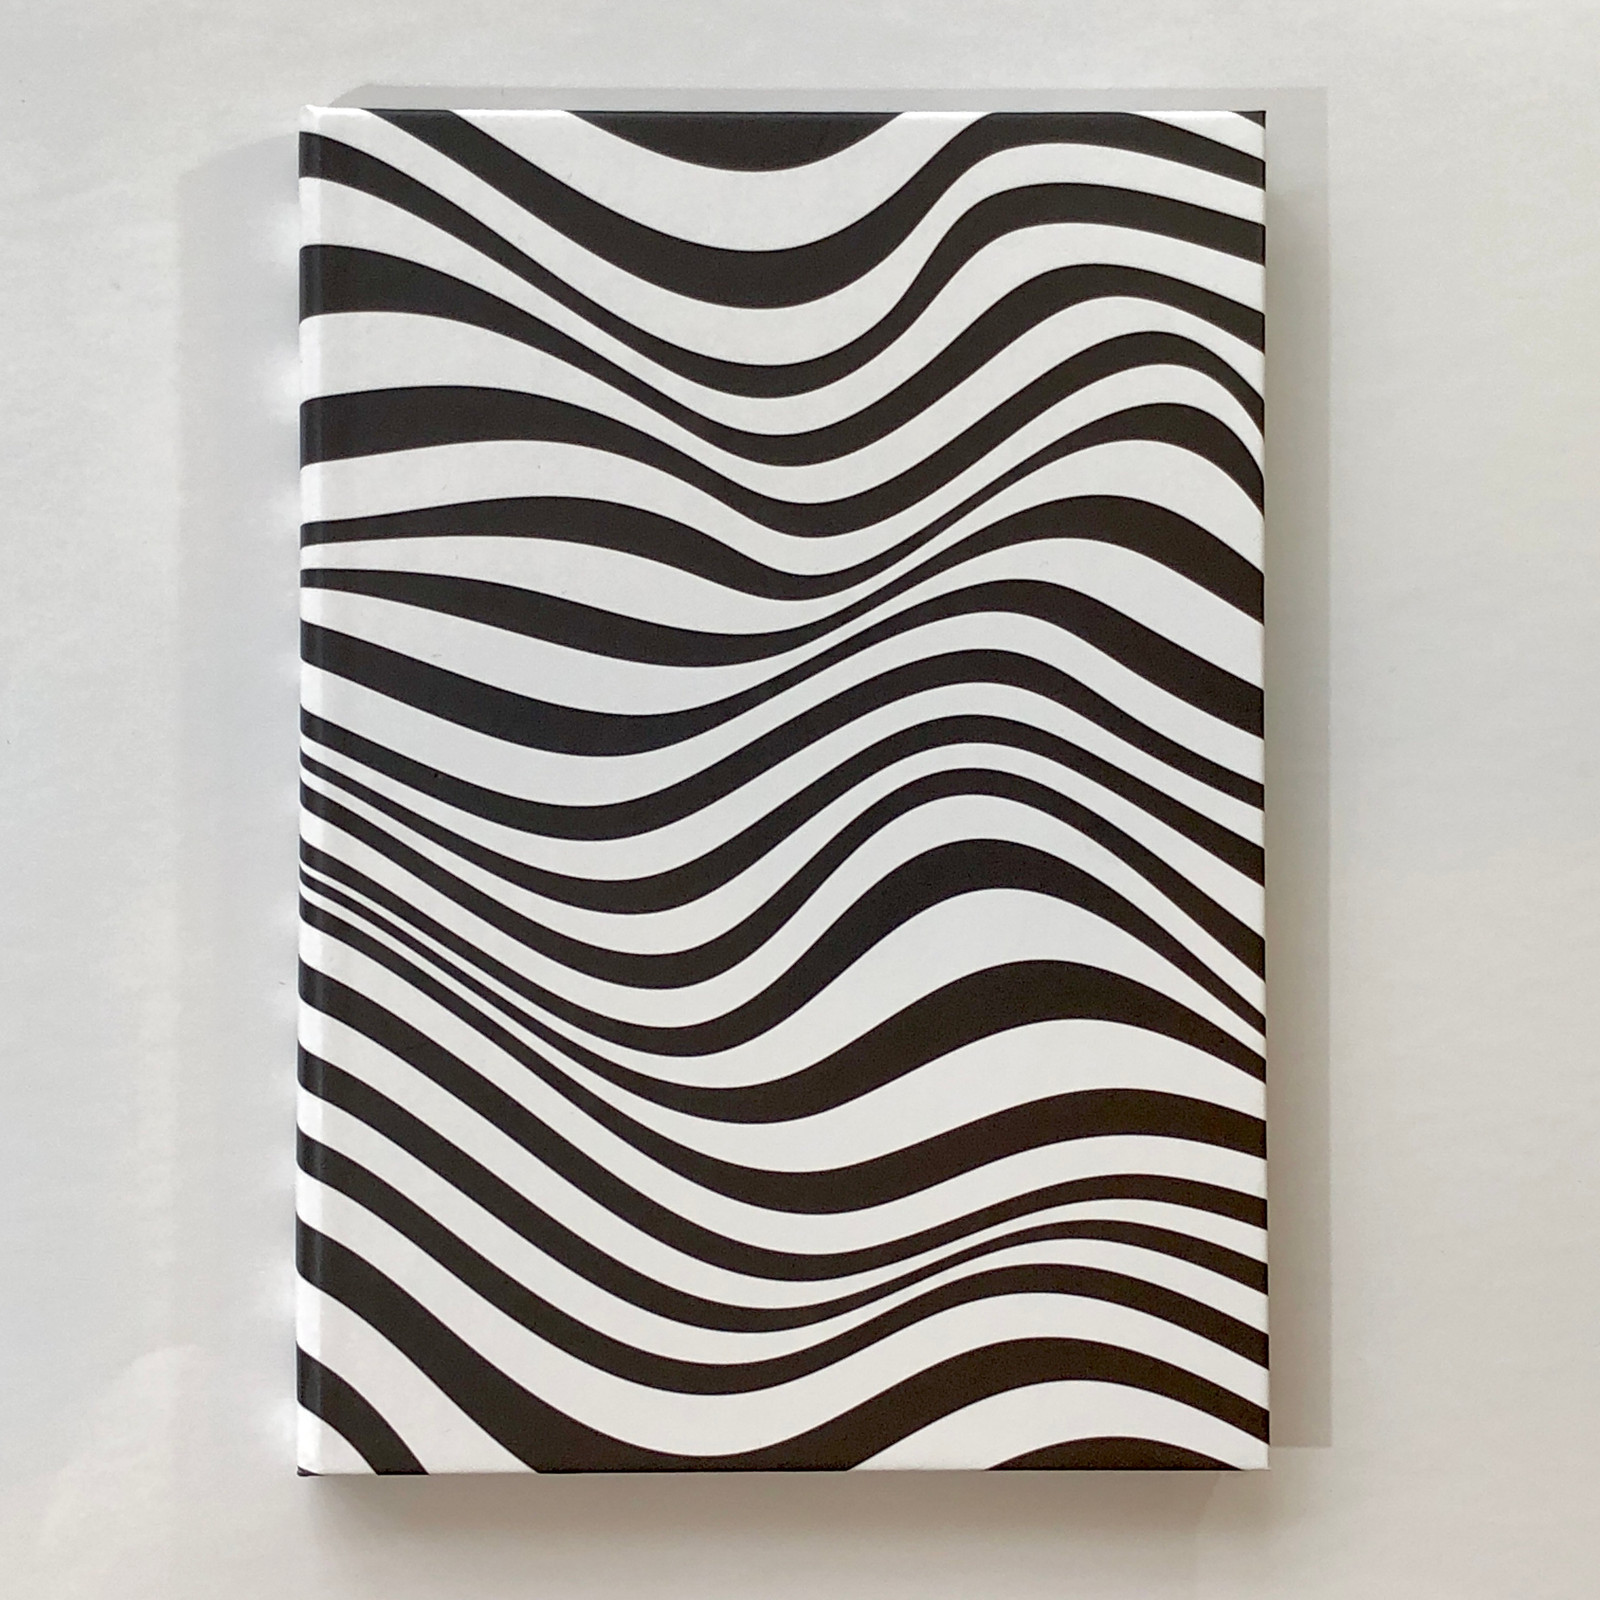 Memmo Dotted Notebook - Wavy Lines